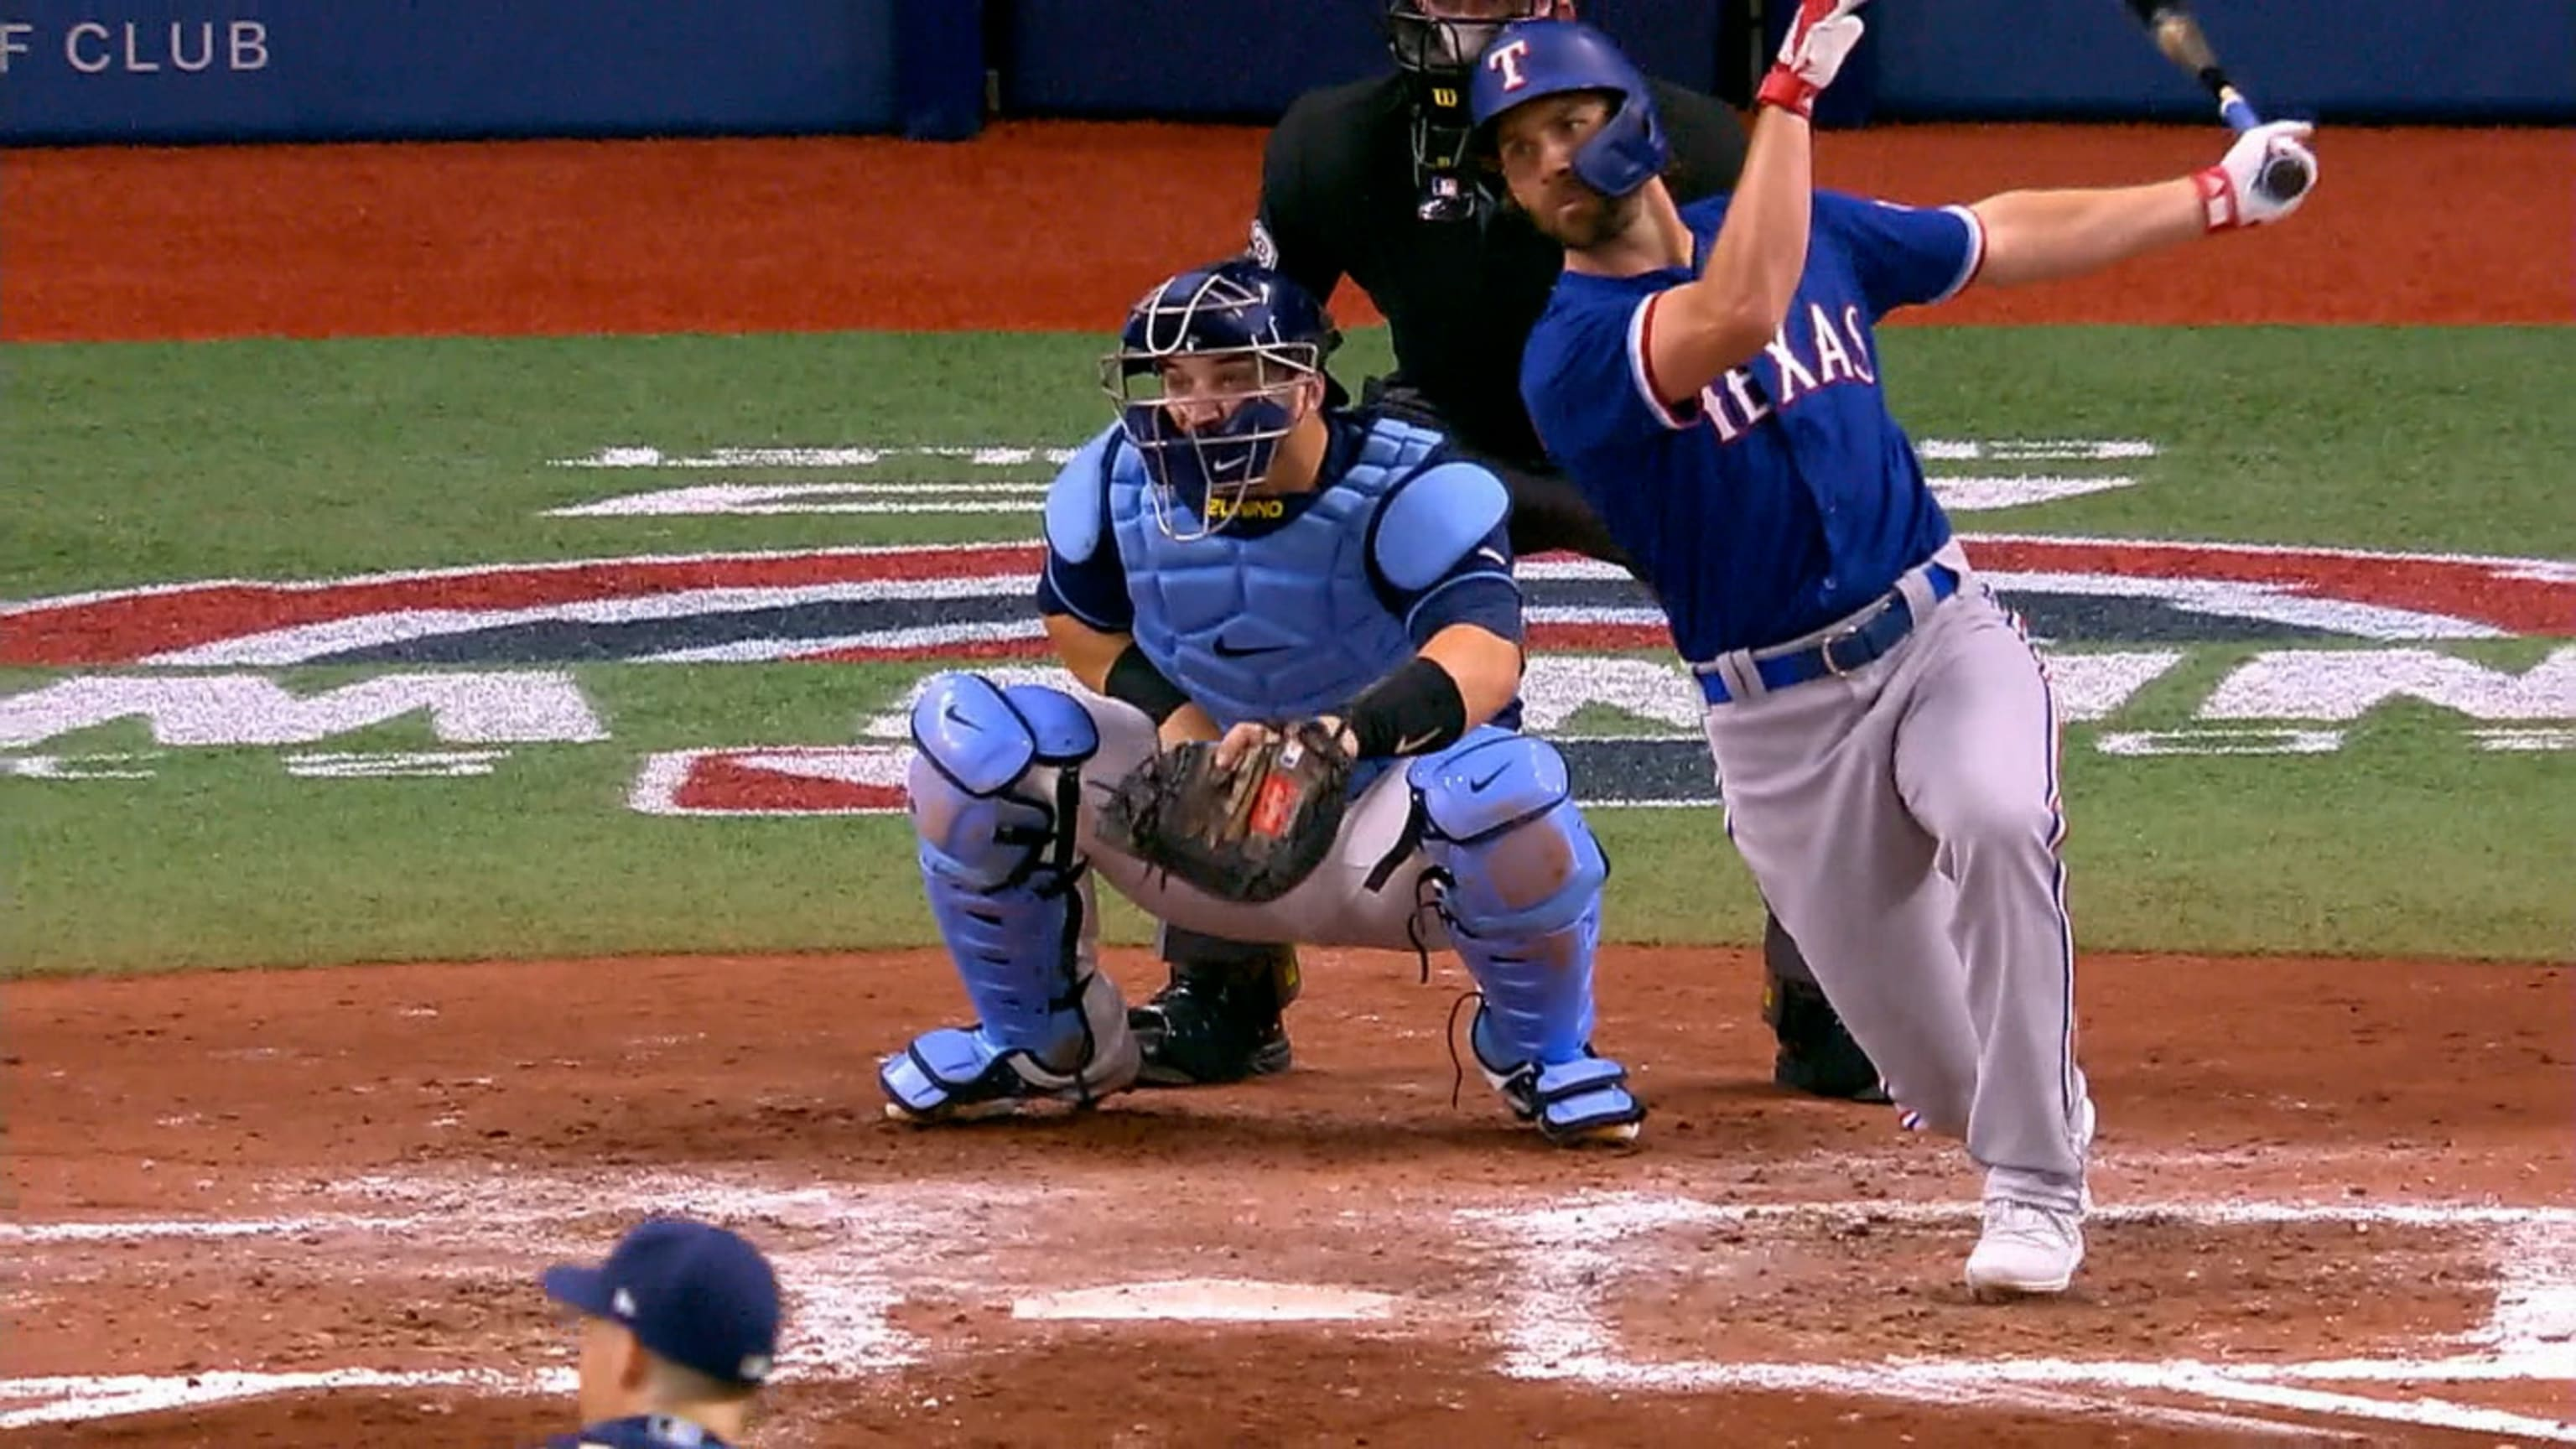 Charlie Culberson's RBI double